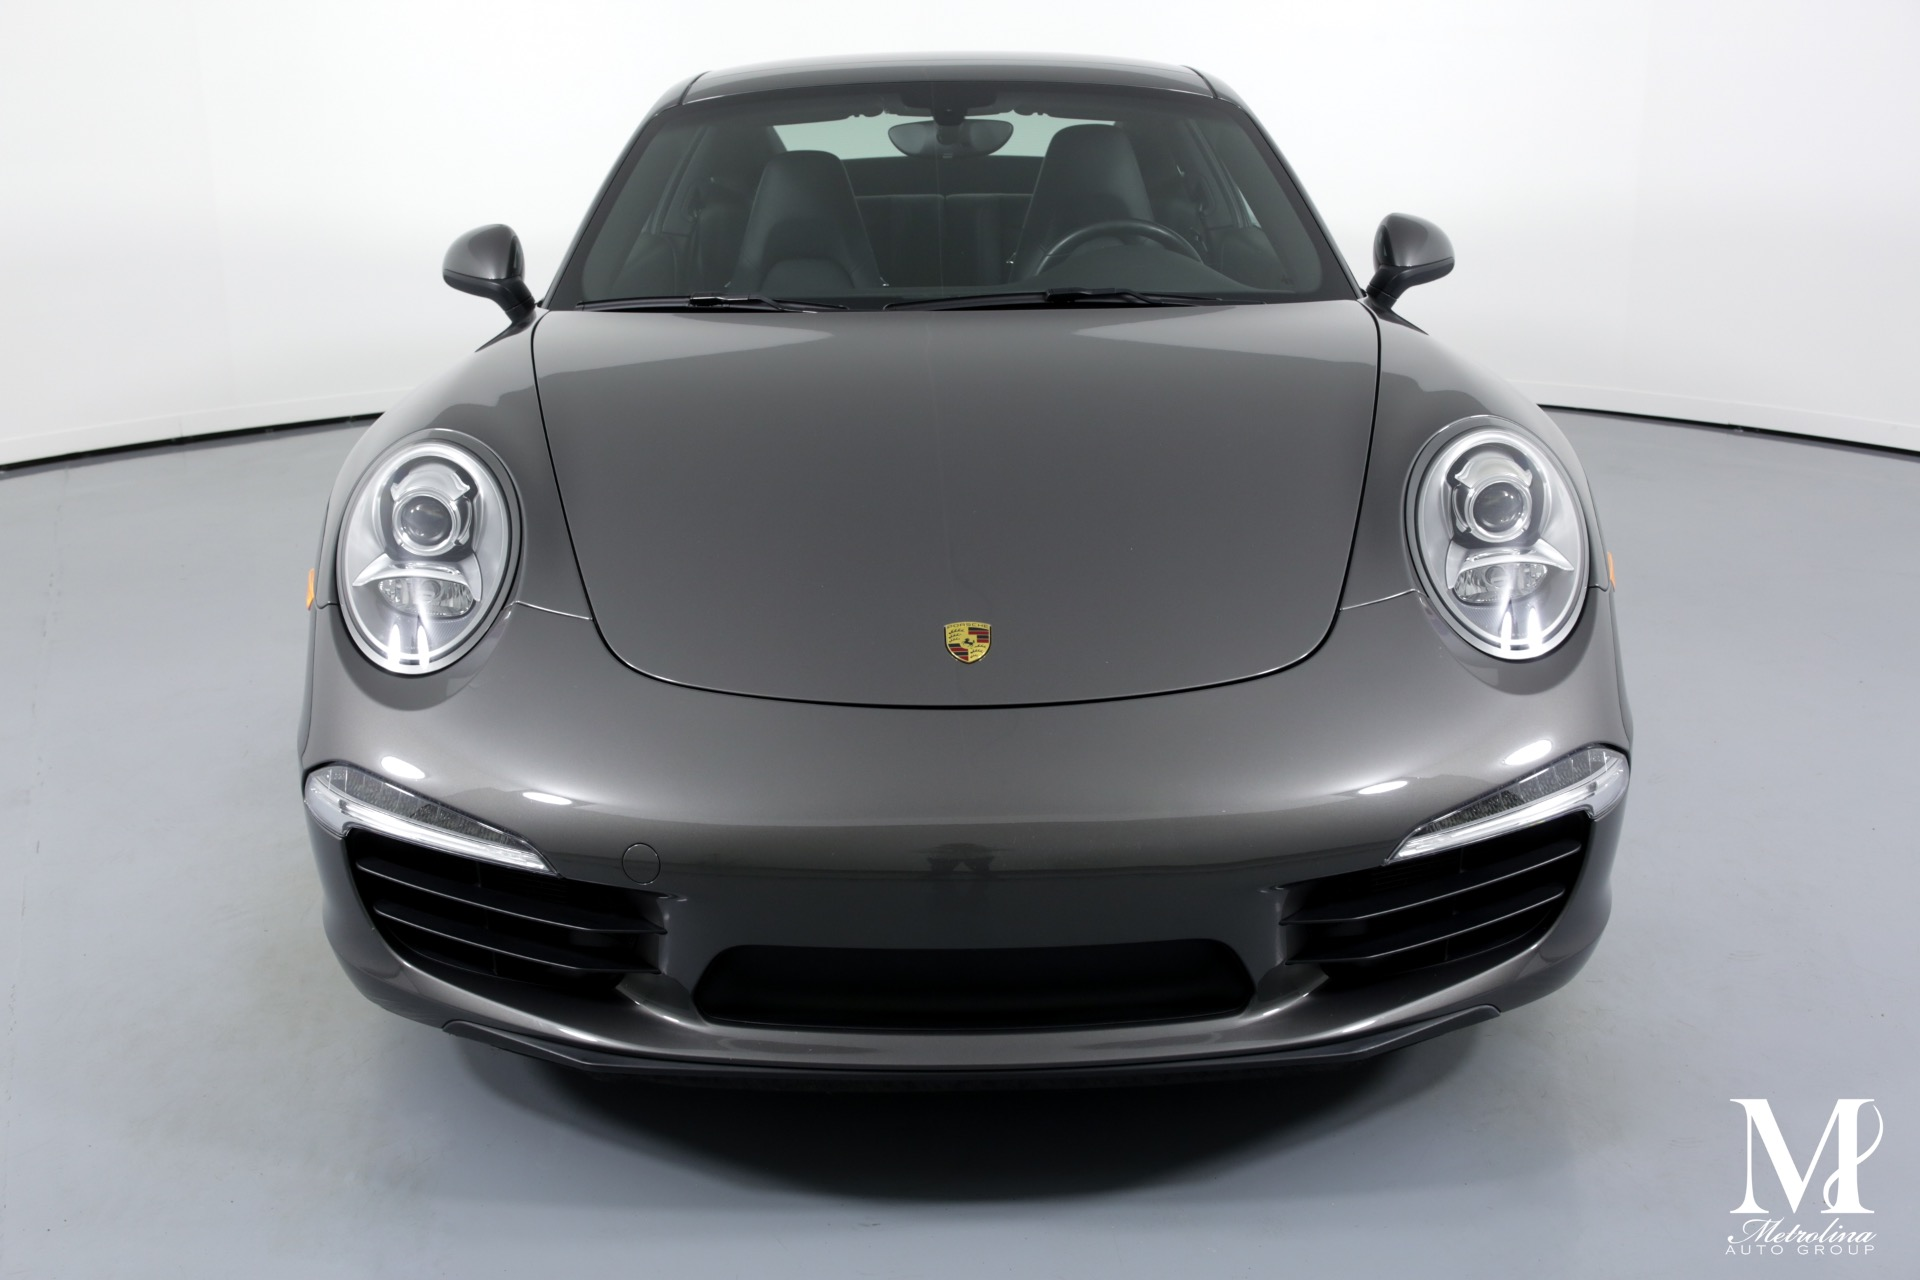 Used 2012 Porsche 911 Carrera S for sale Sold at Metrolina Auto Group in Charlotte NC 28217 - 3